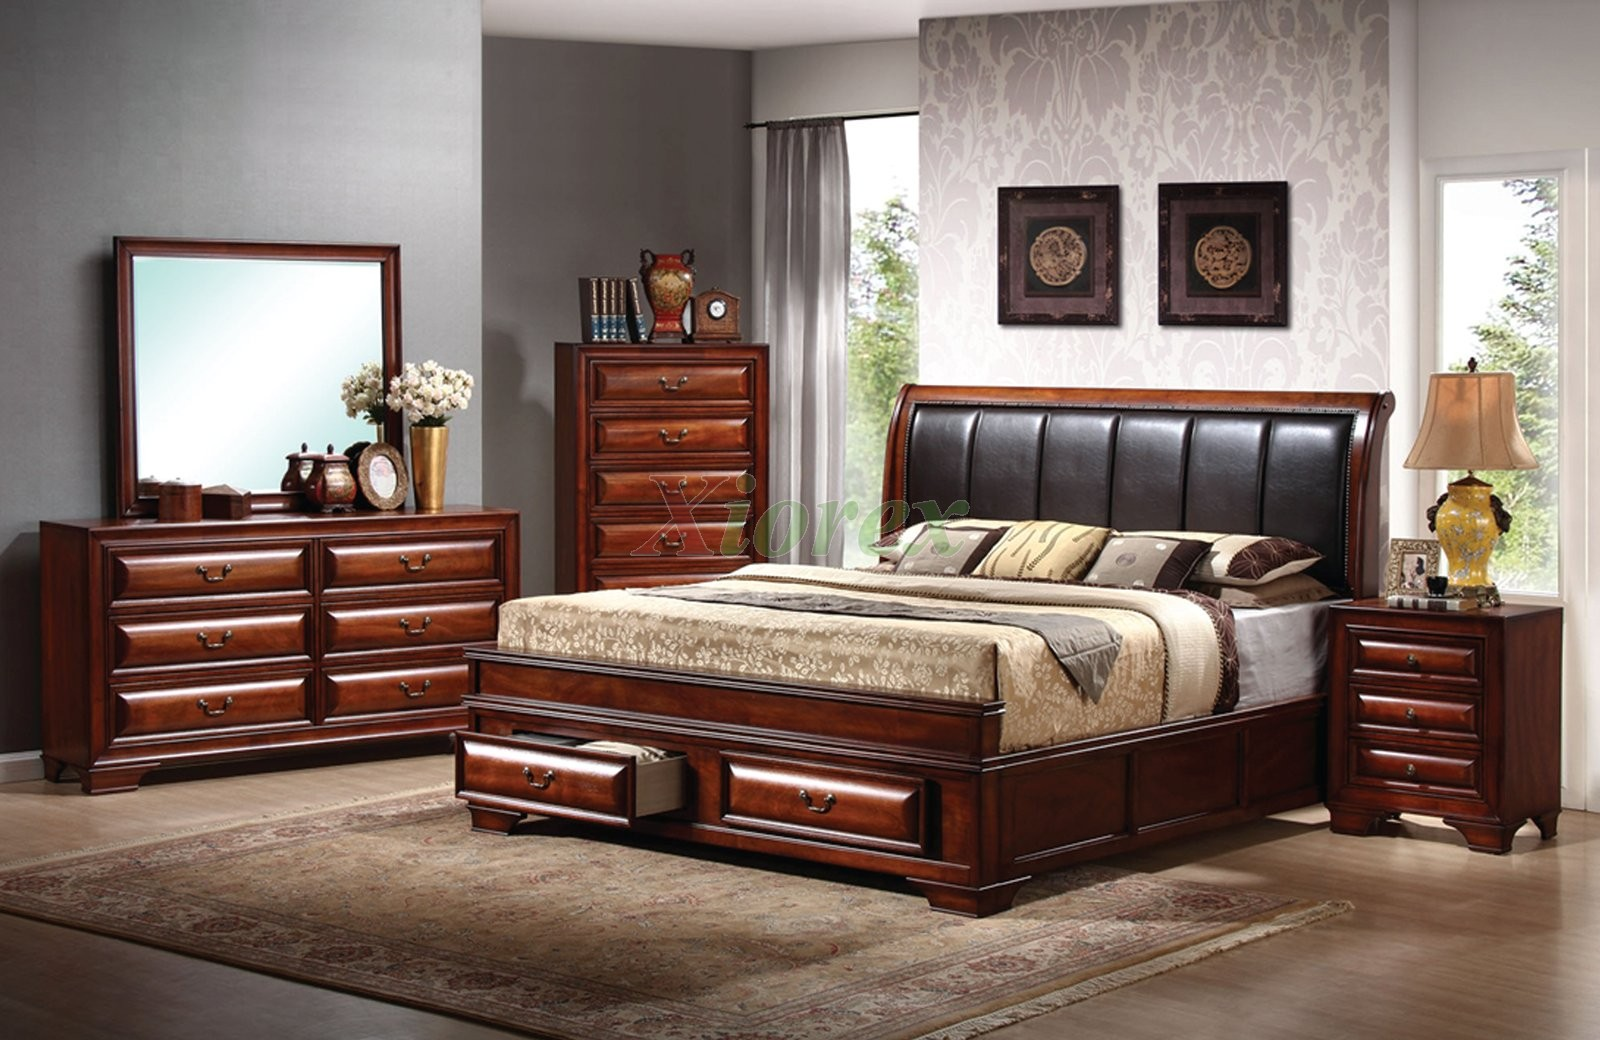 Brilliant King Platform Bedroom Set 1600 x 1040 · 316 kB · jpeg